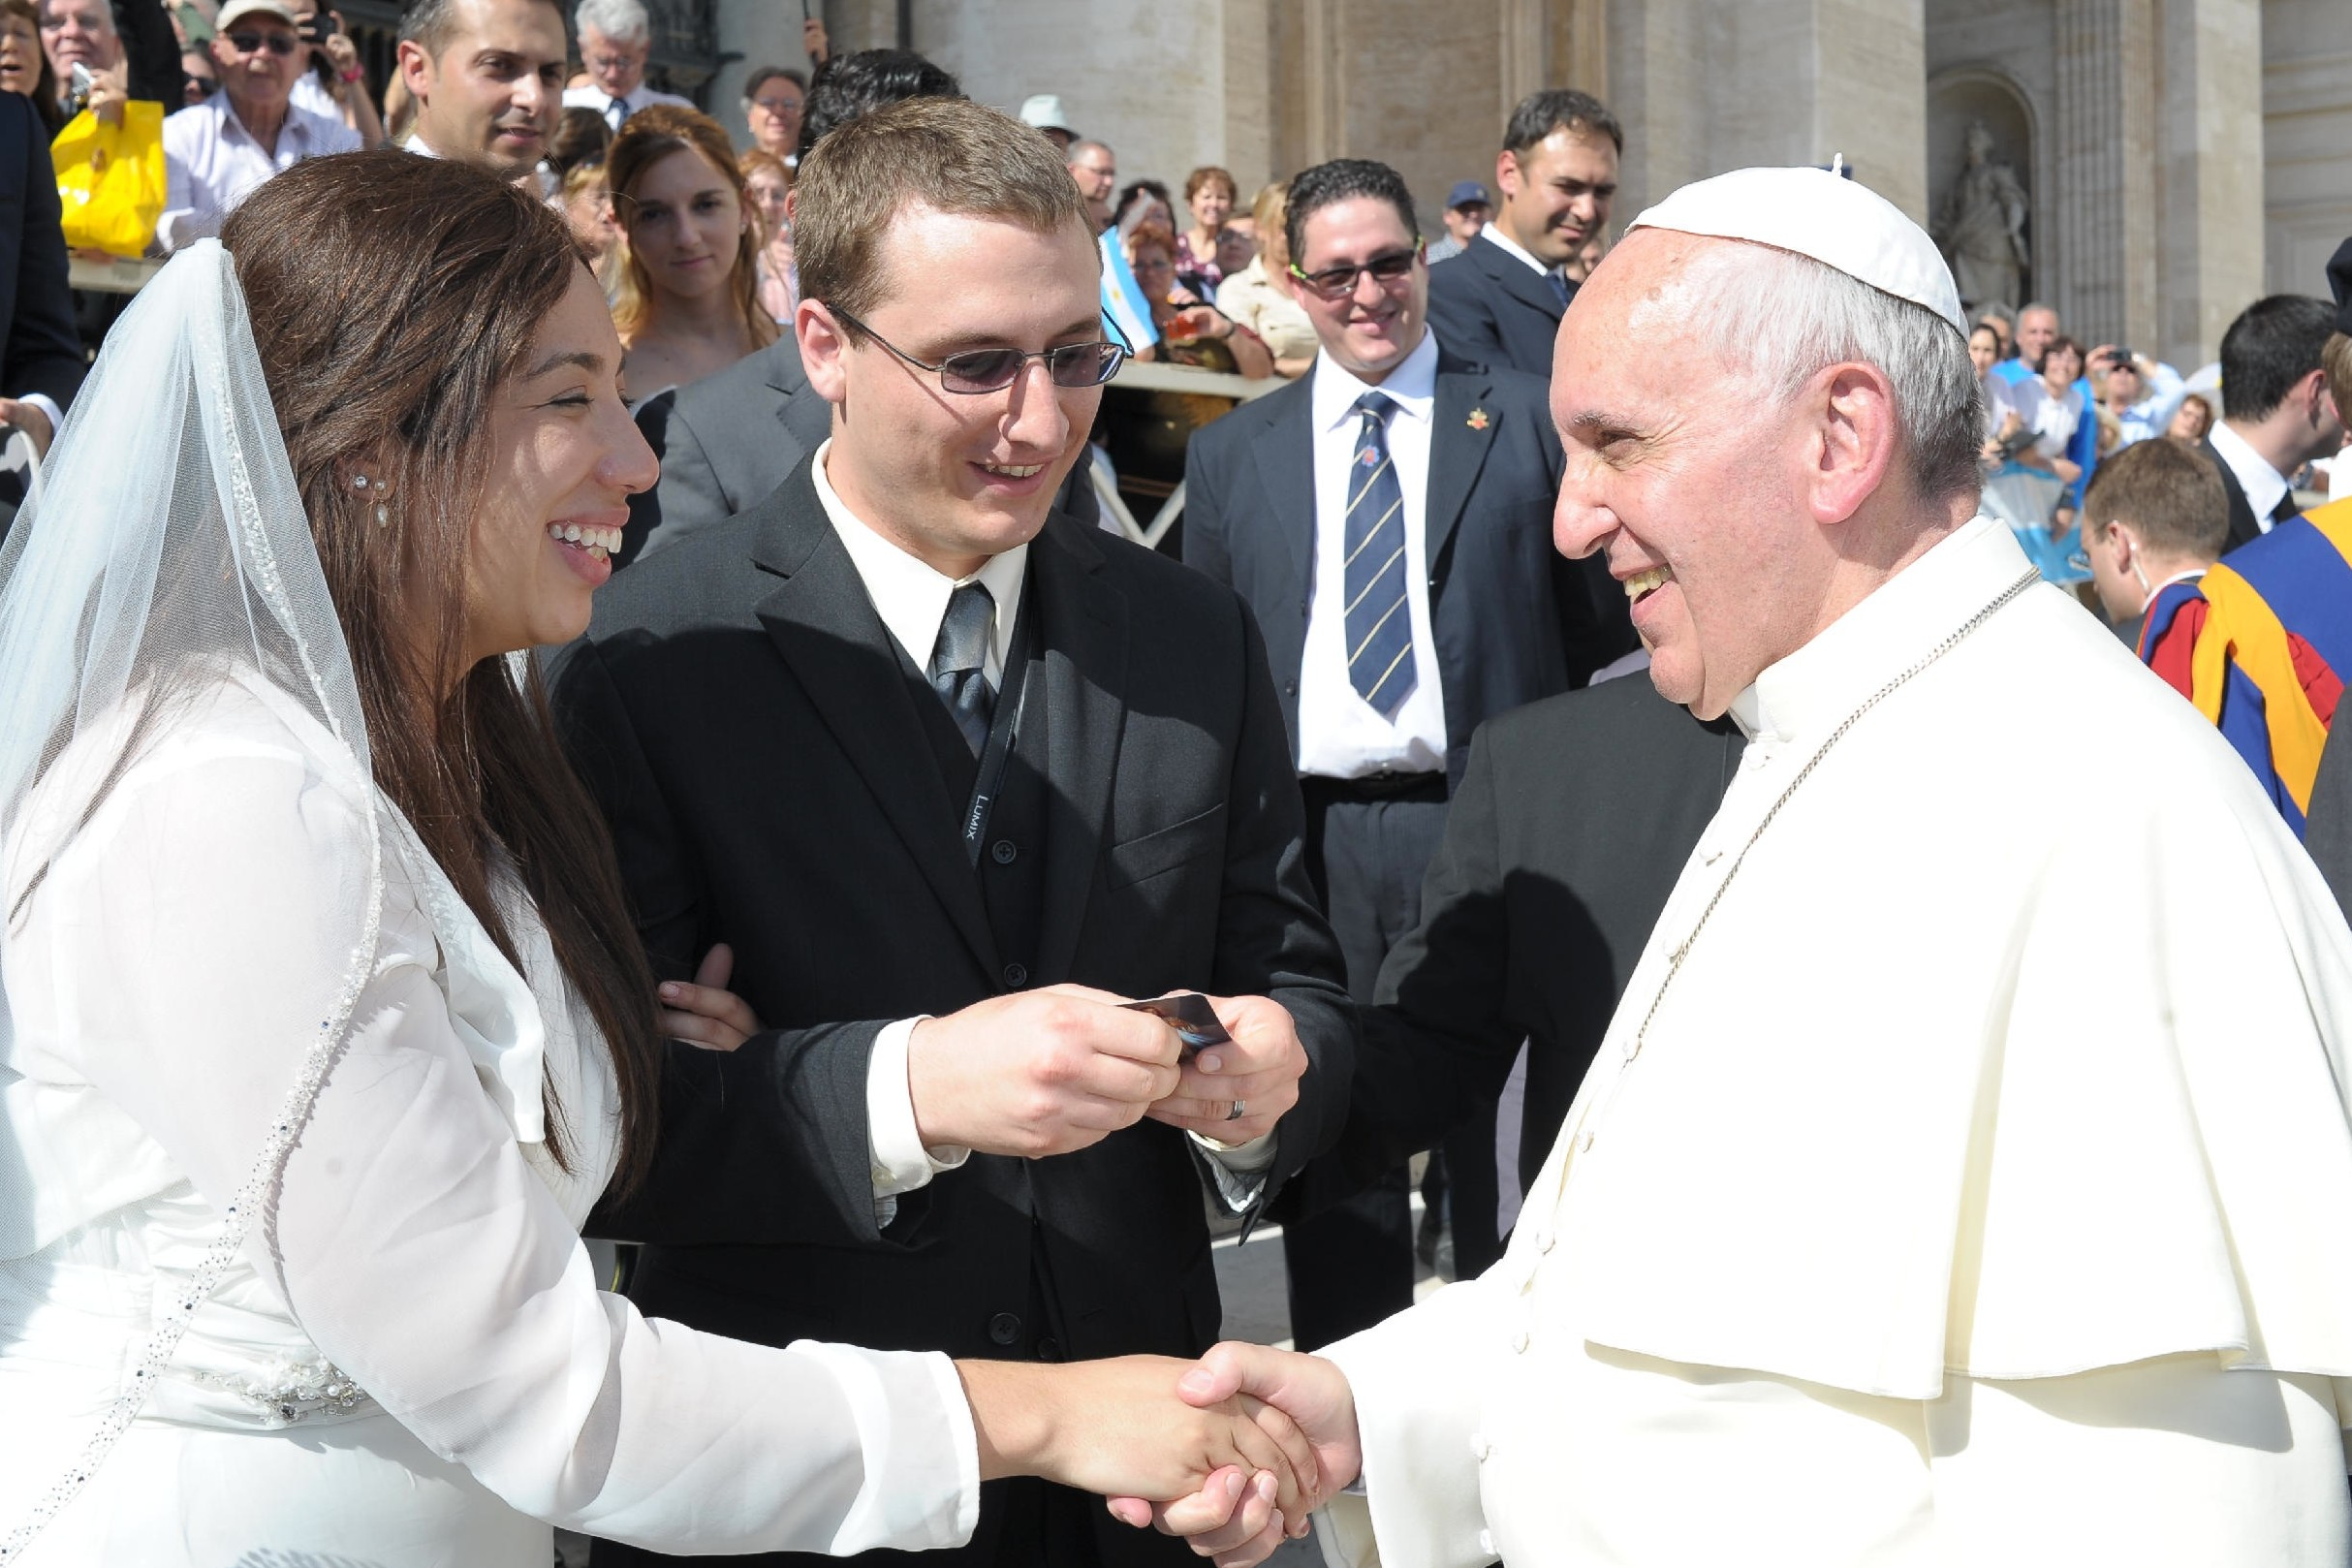 How One Couple Met, Fell in Love, and Met the Pope